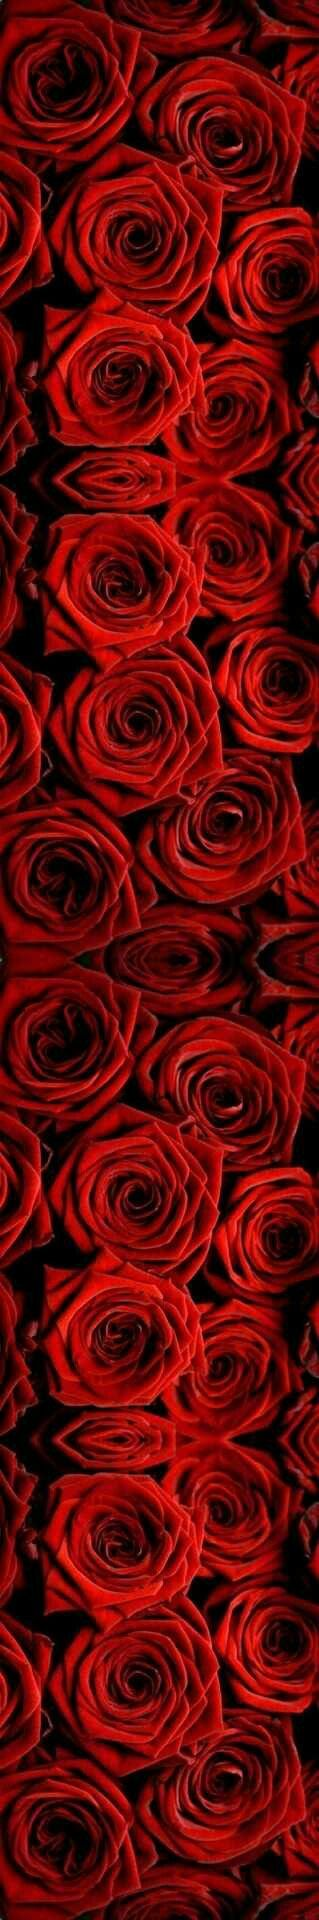 Aug 18...(prompt...3 gifts red, read, written) *red roses ...